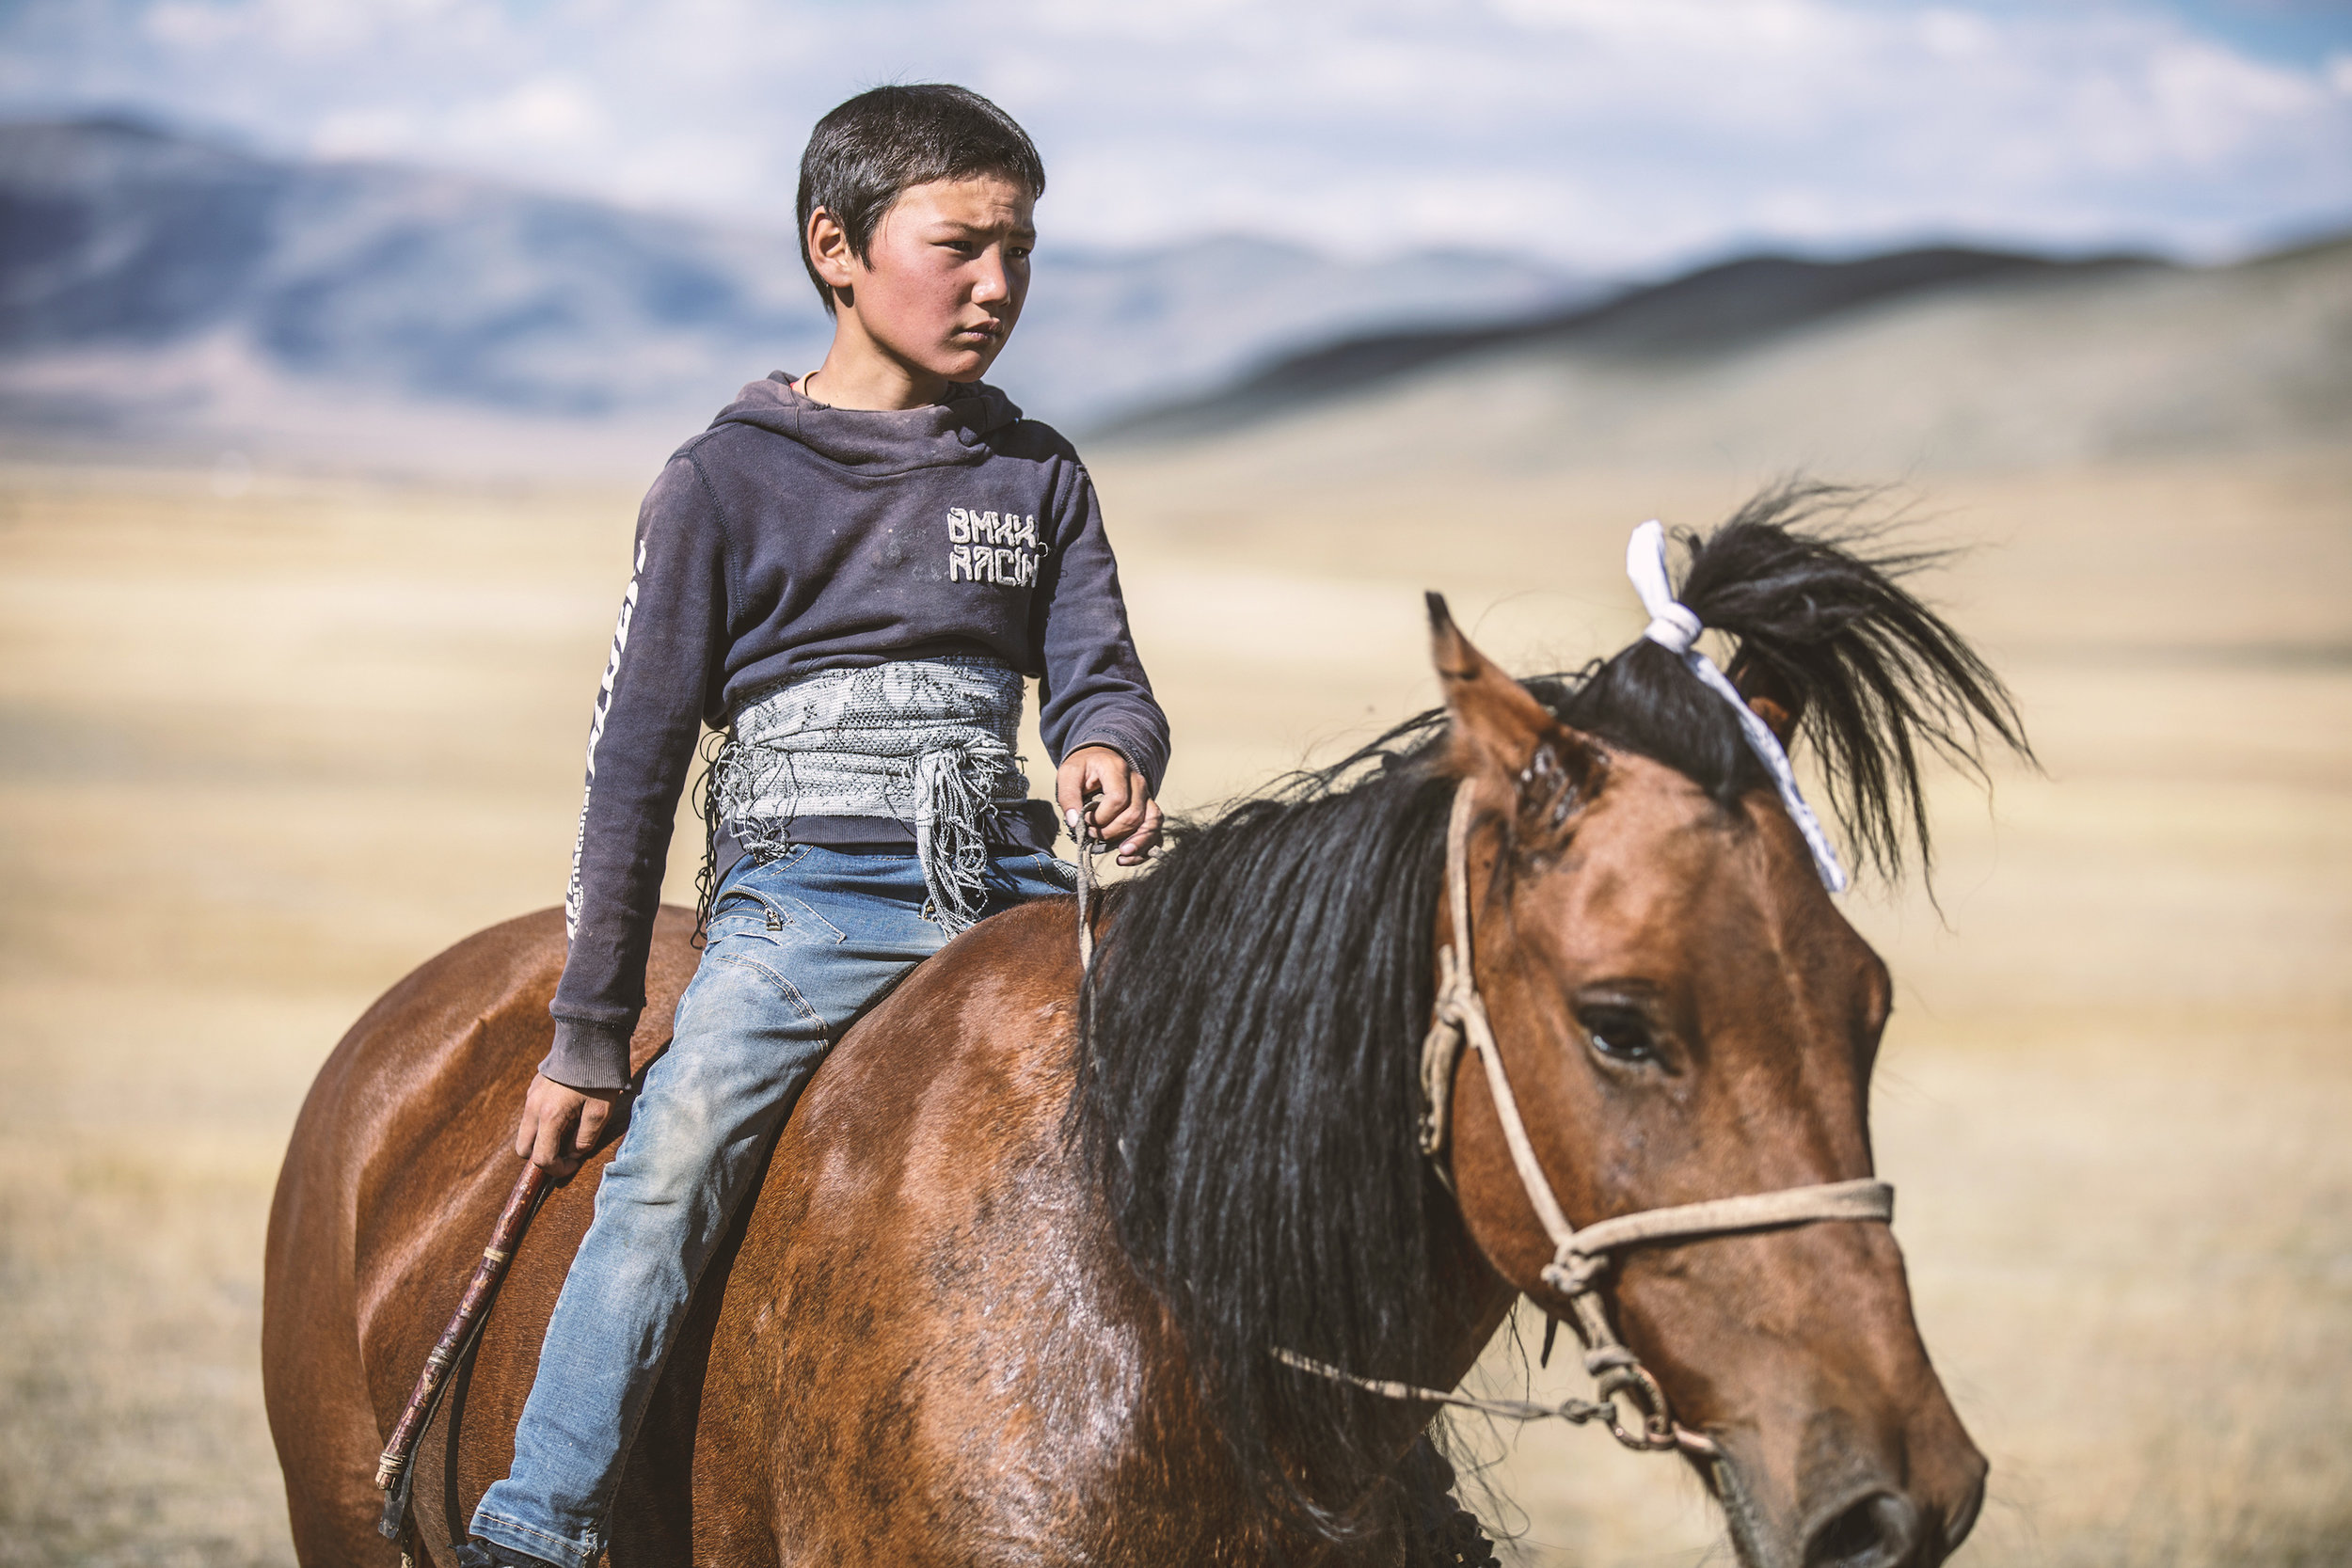 Janibek, a 9-year old Kazakh nomad in the Altai Mountains, Western Mongolia_BOY_NOMAD_aAron_Munson.jpg